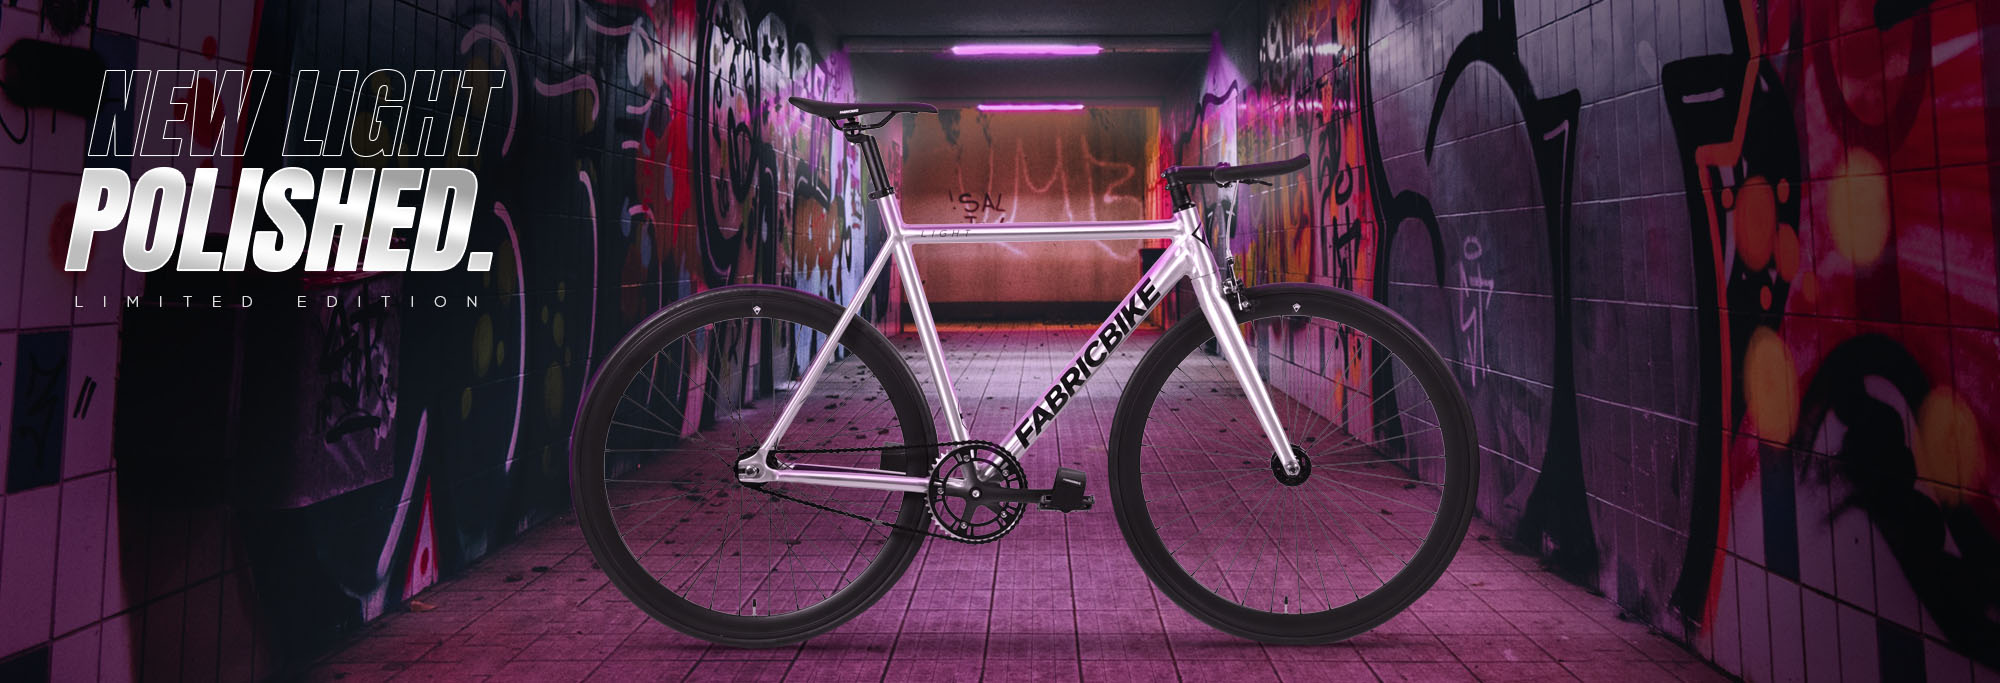 BANNER-FABRICBIKE-LIGHT_Polished-pc